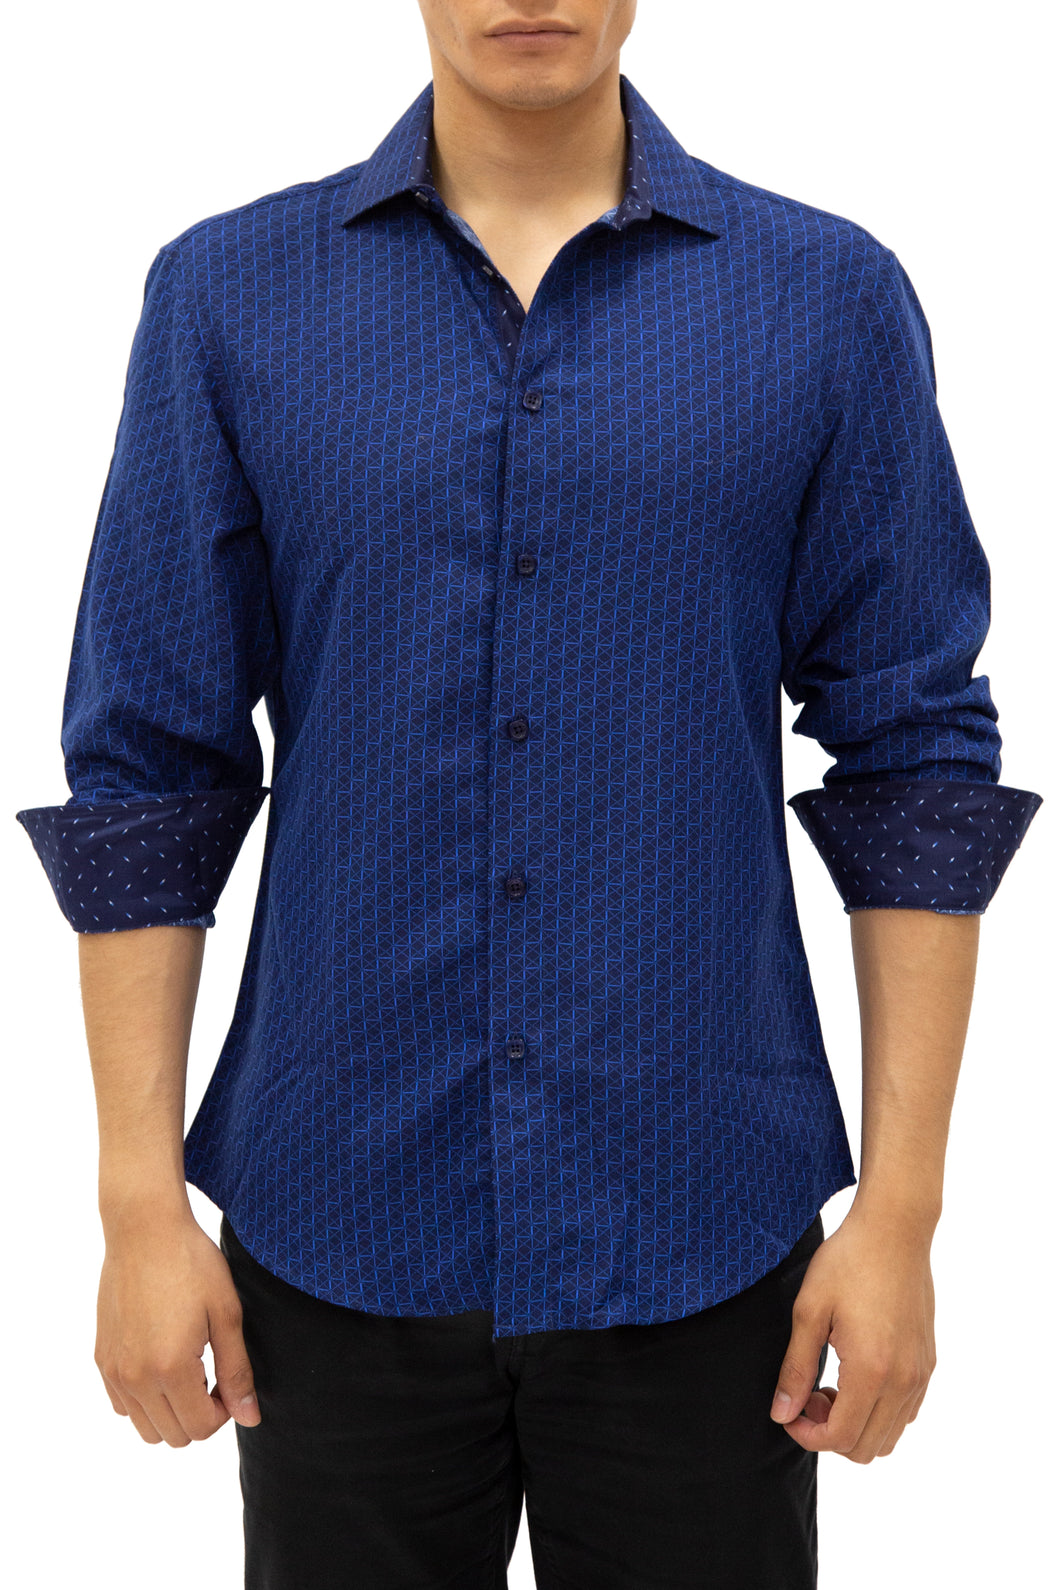 192389 - Navy Button Up Long Sleeve Dress Shirt